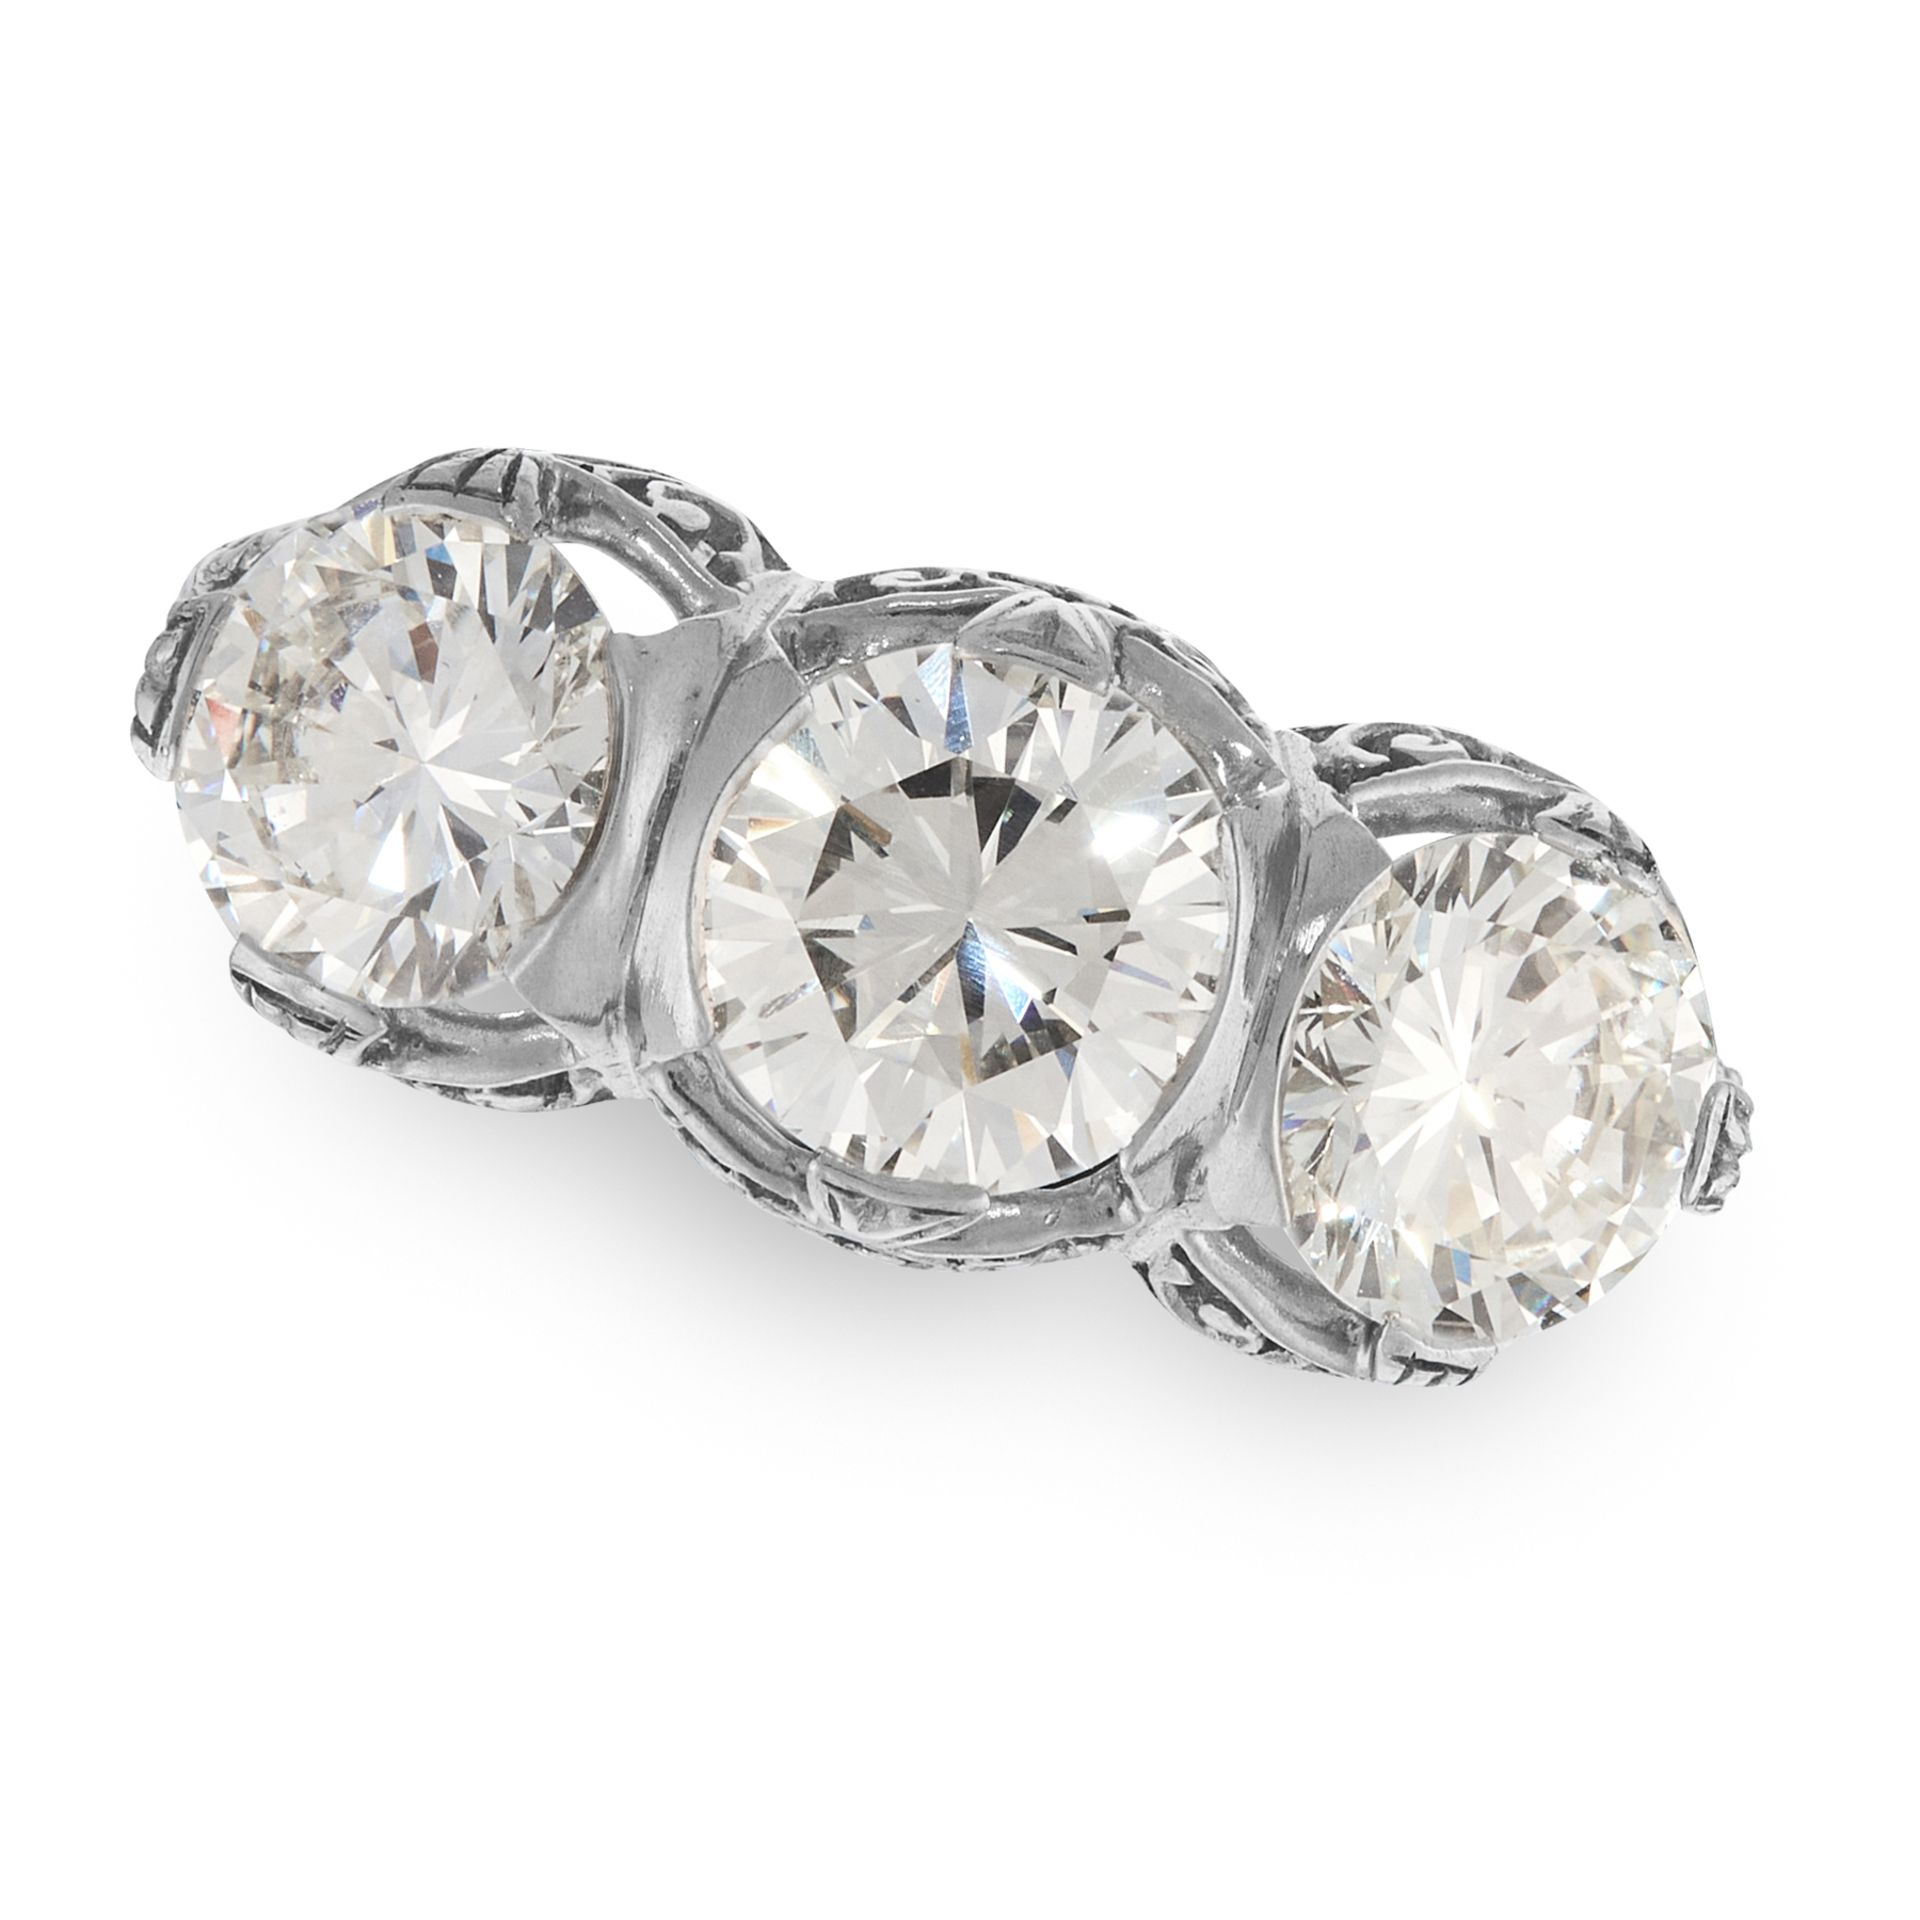 A DIAMOND THREE STONE RING set with a trio of round cut diamonds, the largest of 1.01 carats,